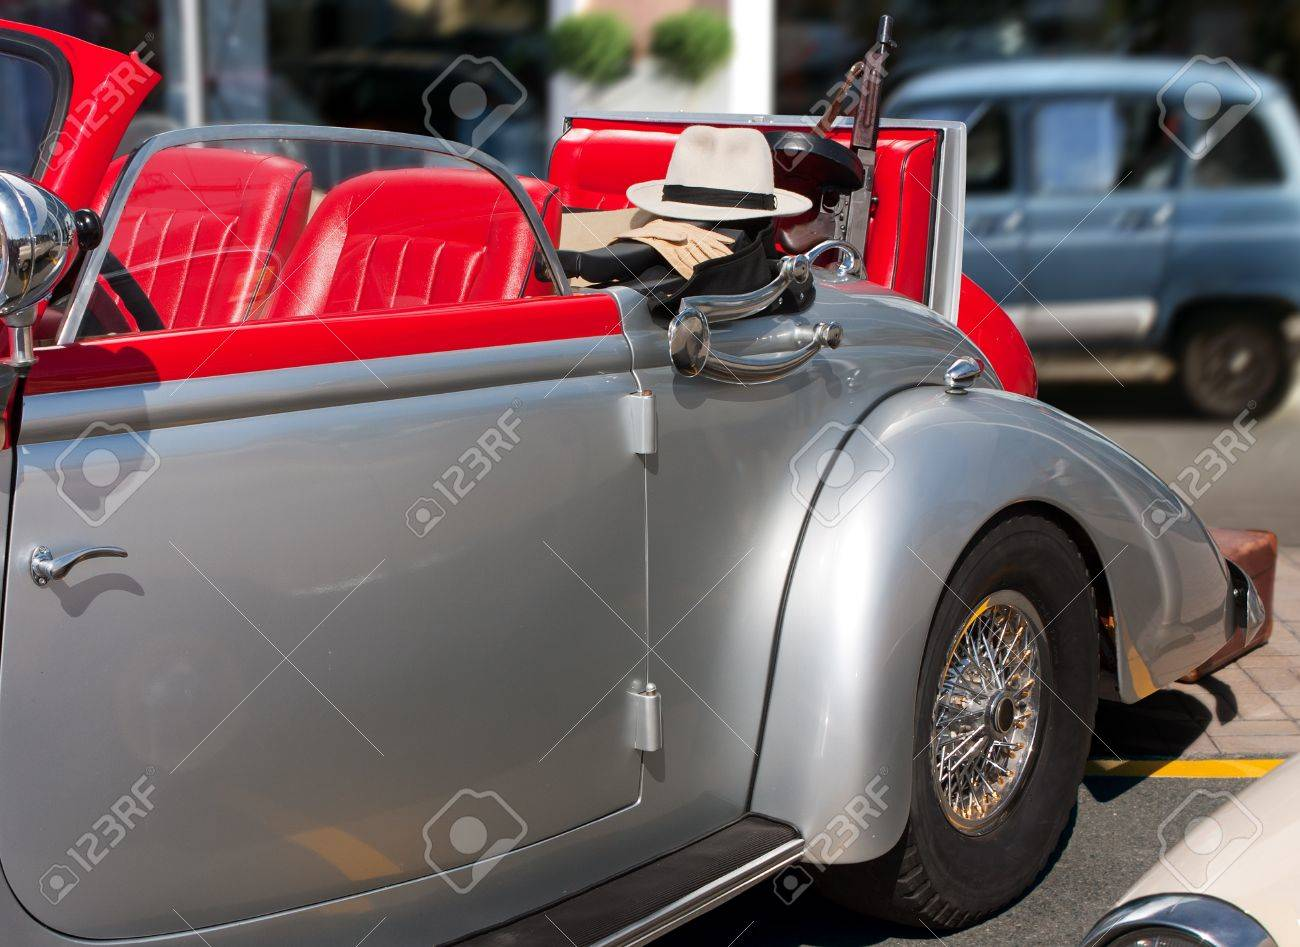 Vintage Cabrio Car With Gangster Tools - Tommy Gun, Hat And Gloves ...